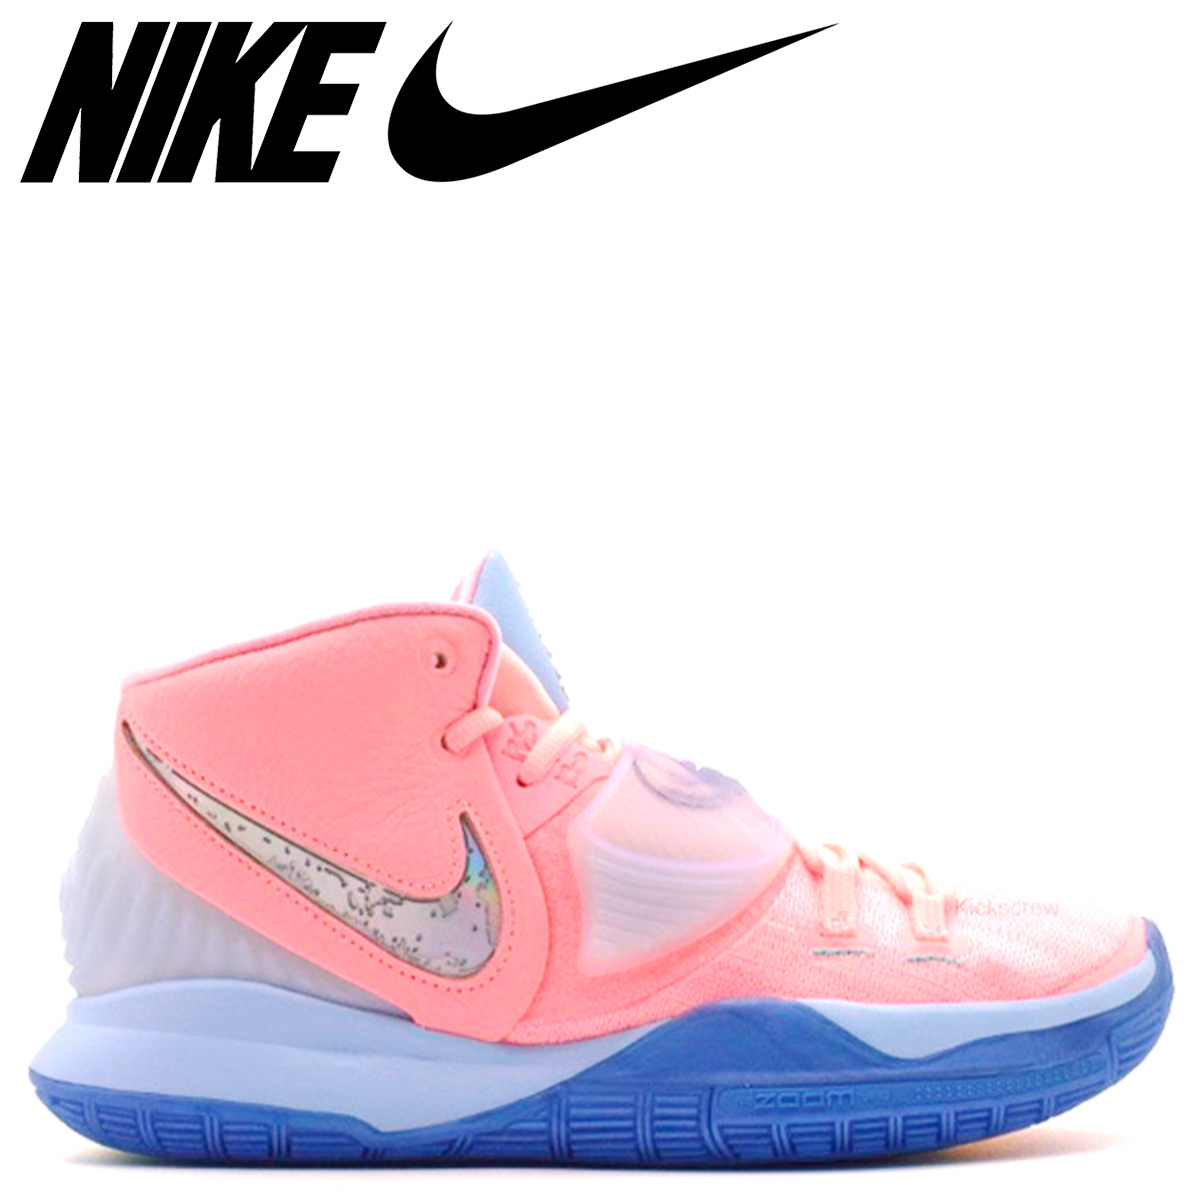 NIKE KYRIE 6 CNCPTS EP ナイキ カイリー 6 コンセプツ EP スニーカー メンズ ピンク CU8880-600 【zzi】 【返品不可】